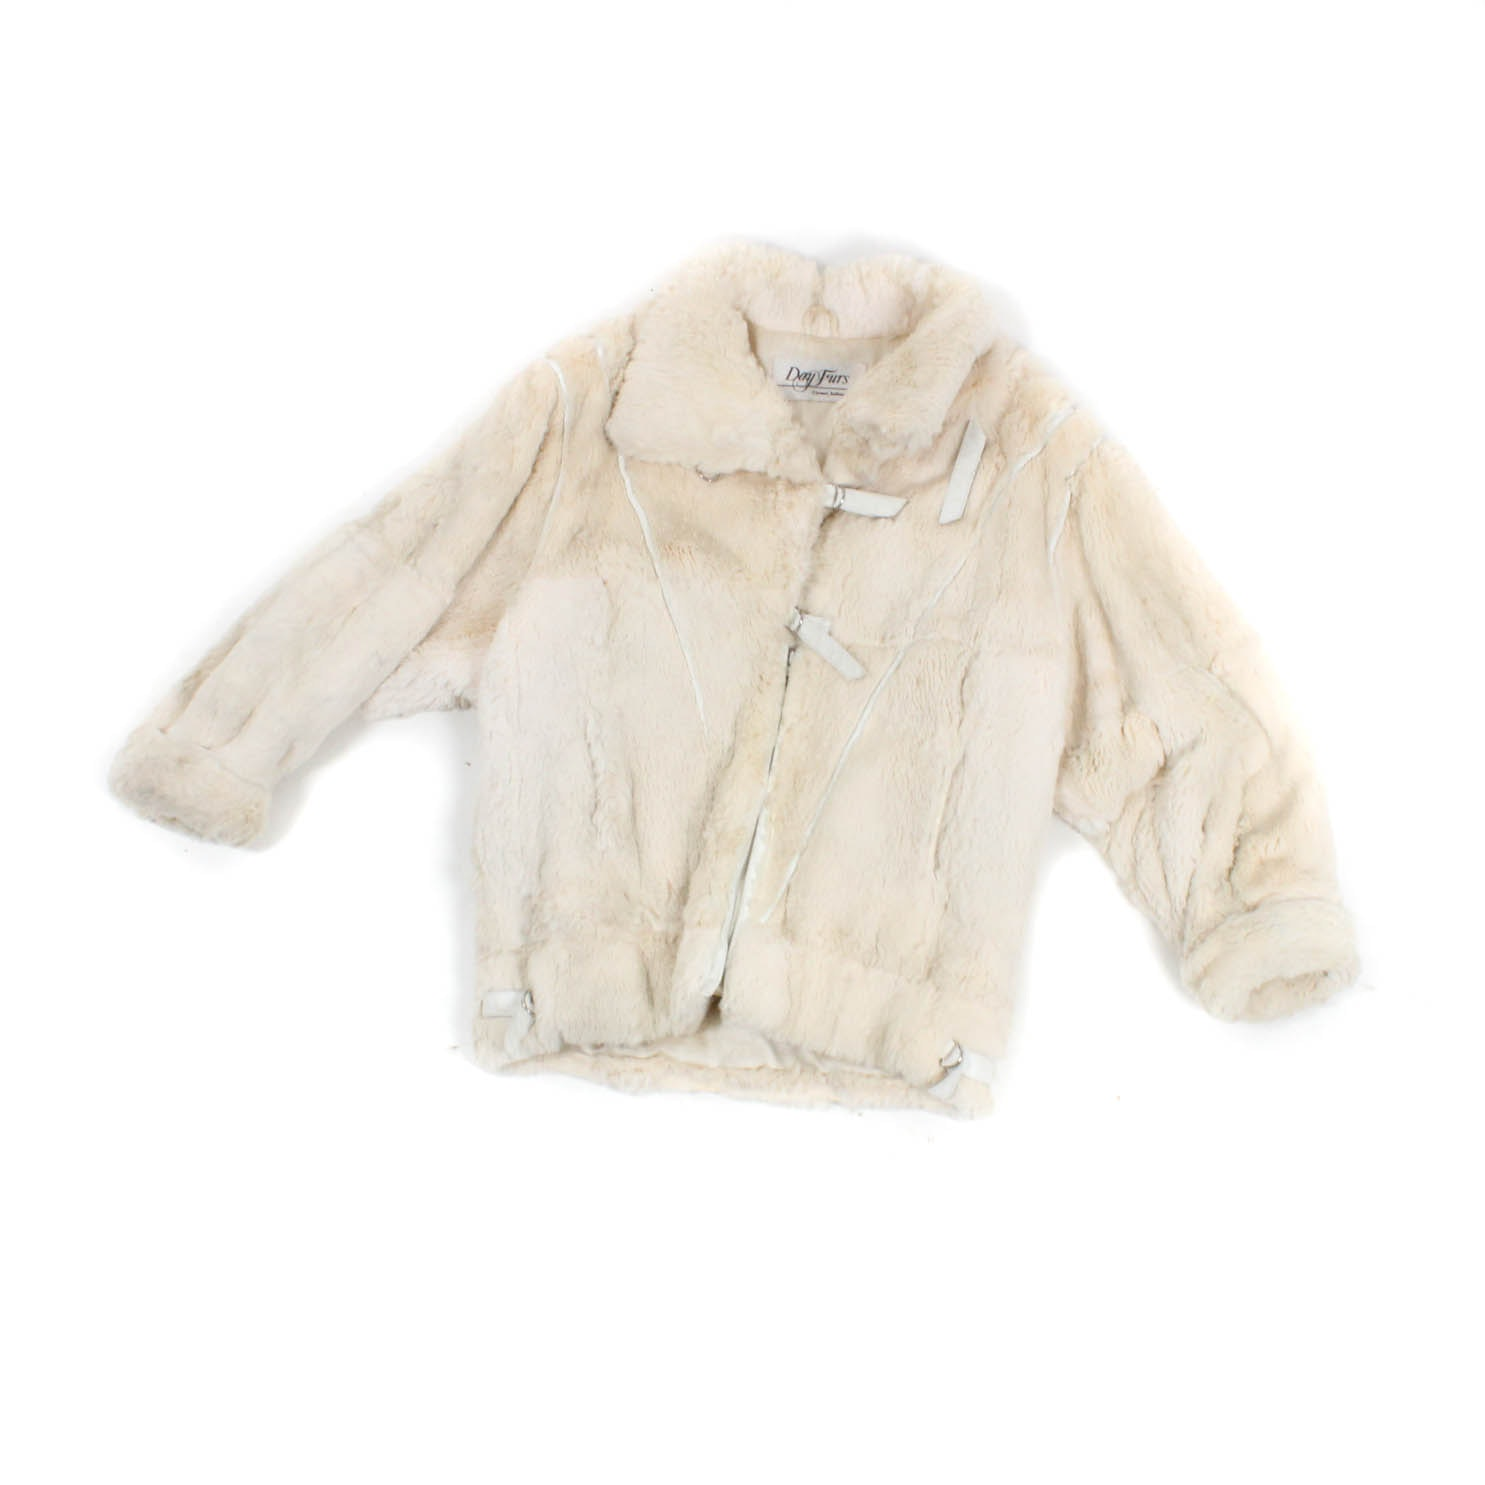 Vintage Rex Rabbit Fur Jacket